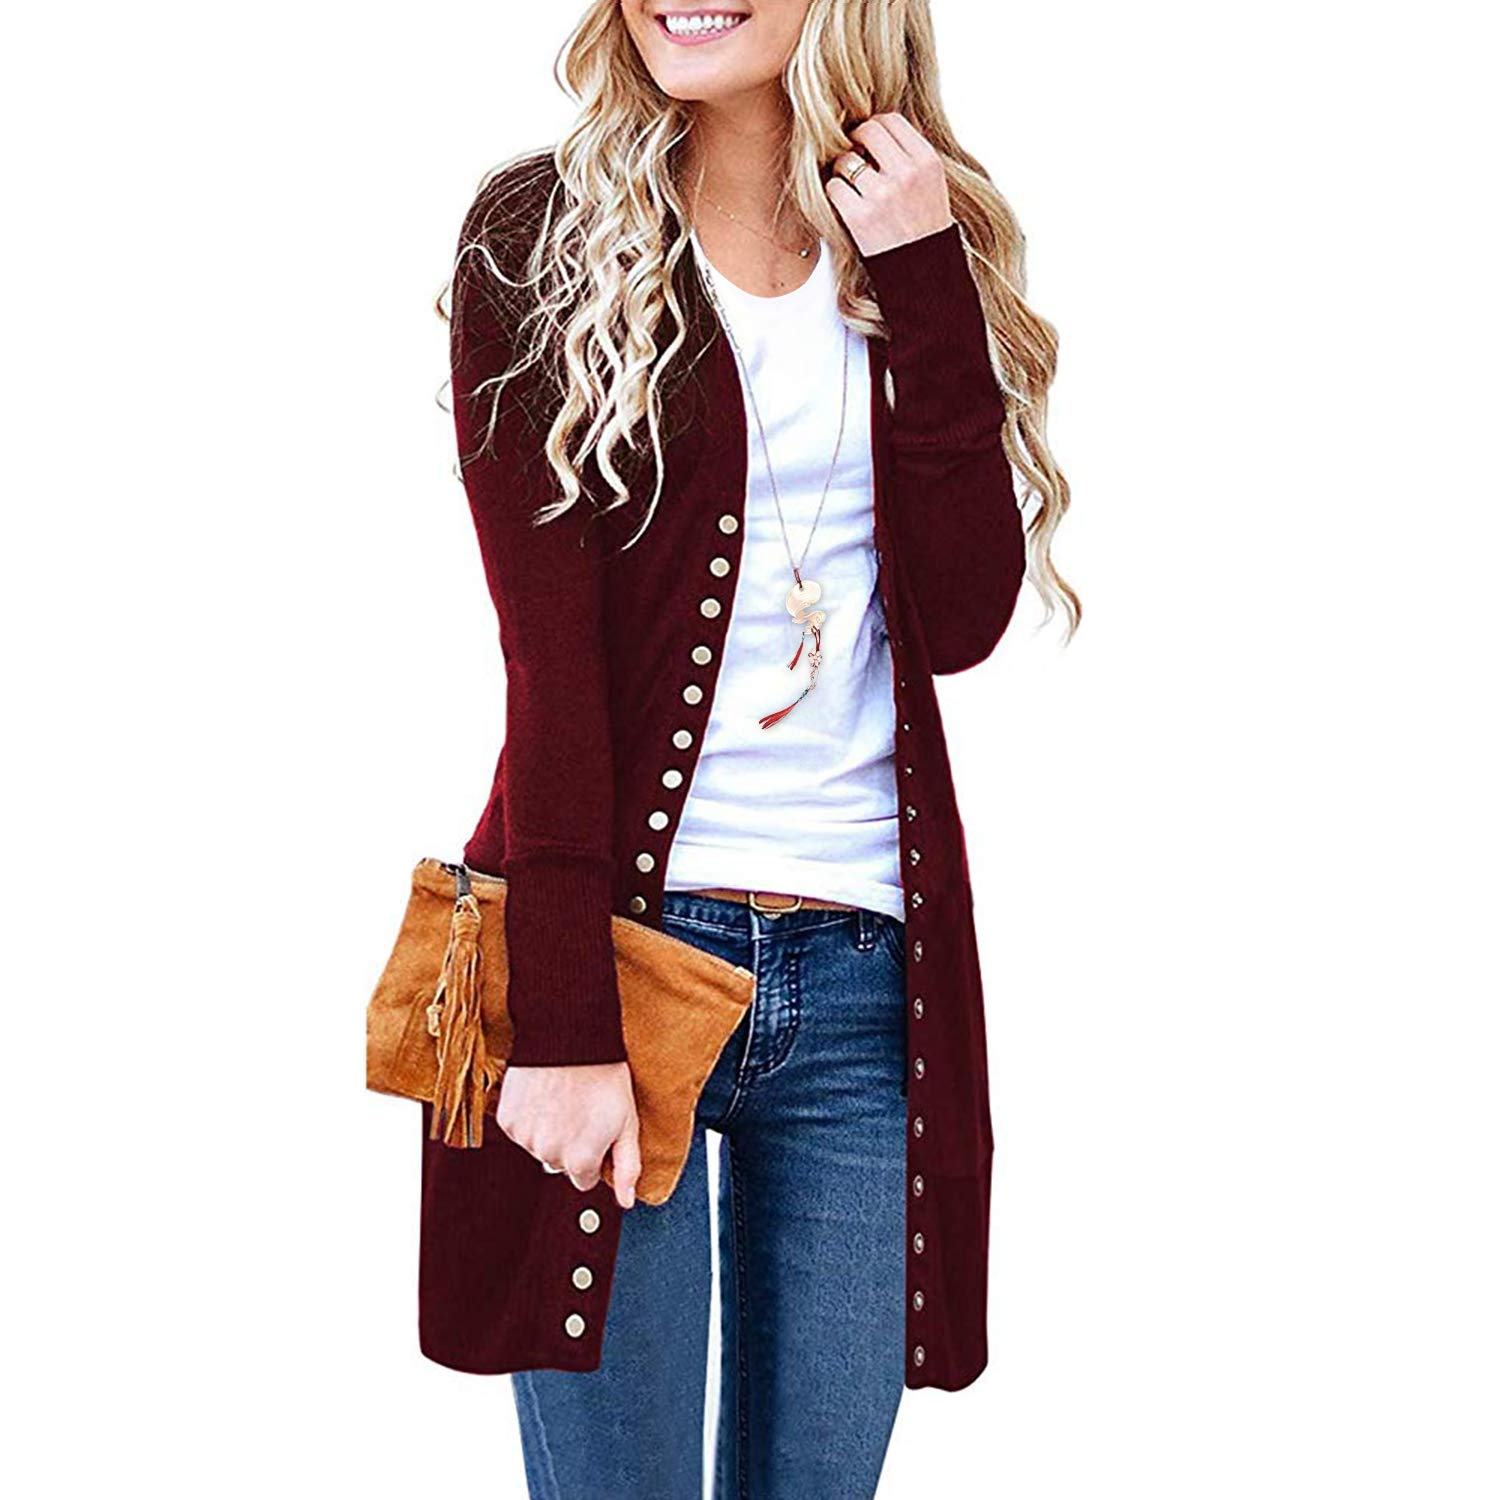 Longburgundy SATINATO Sweaters for Women,Cardigan Sweaters for Women, Long Sleeve Soft Basic Knit Solid color Cardigan Sweater